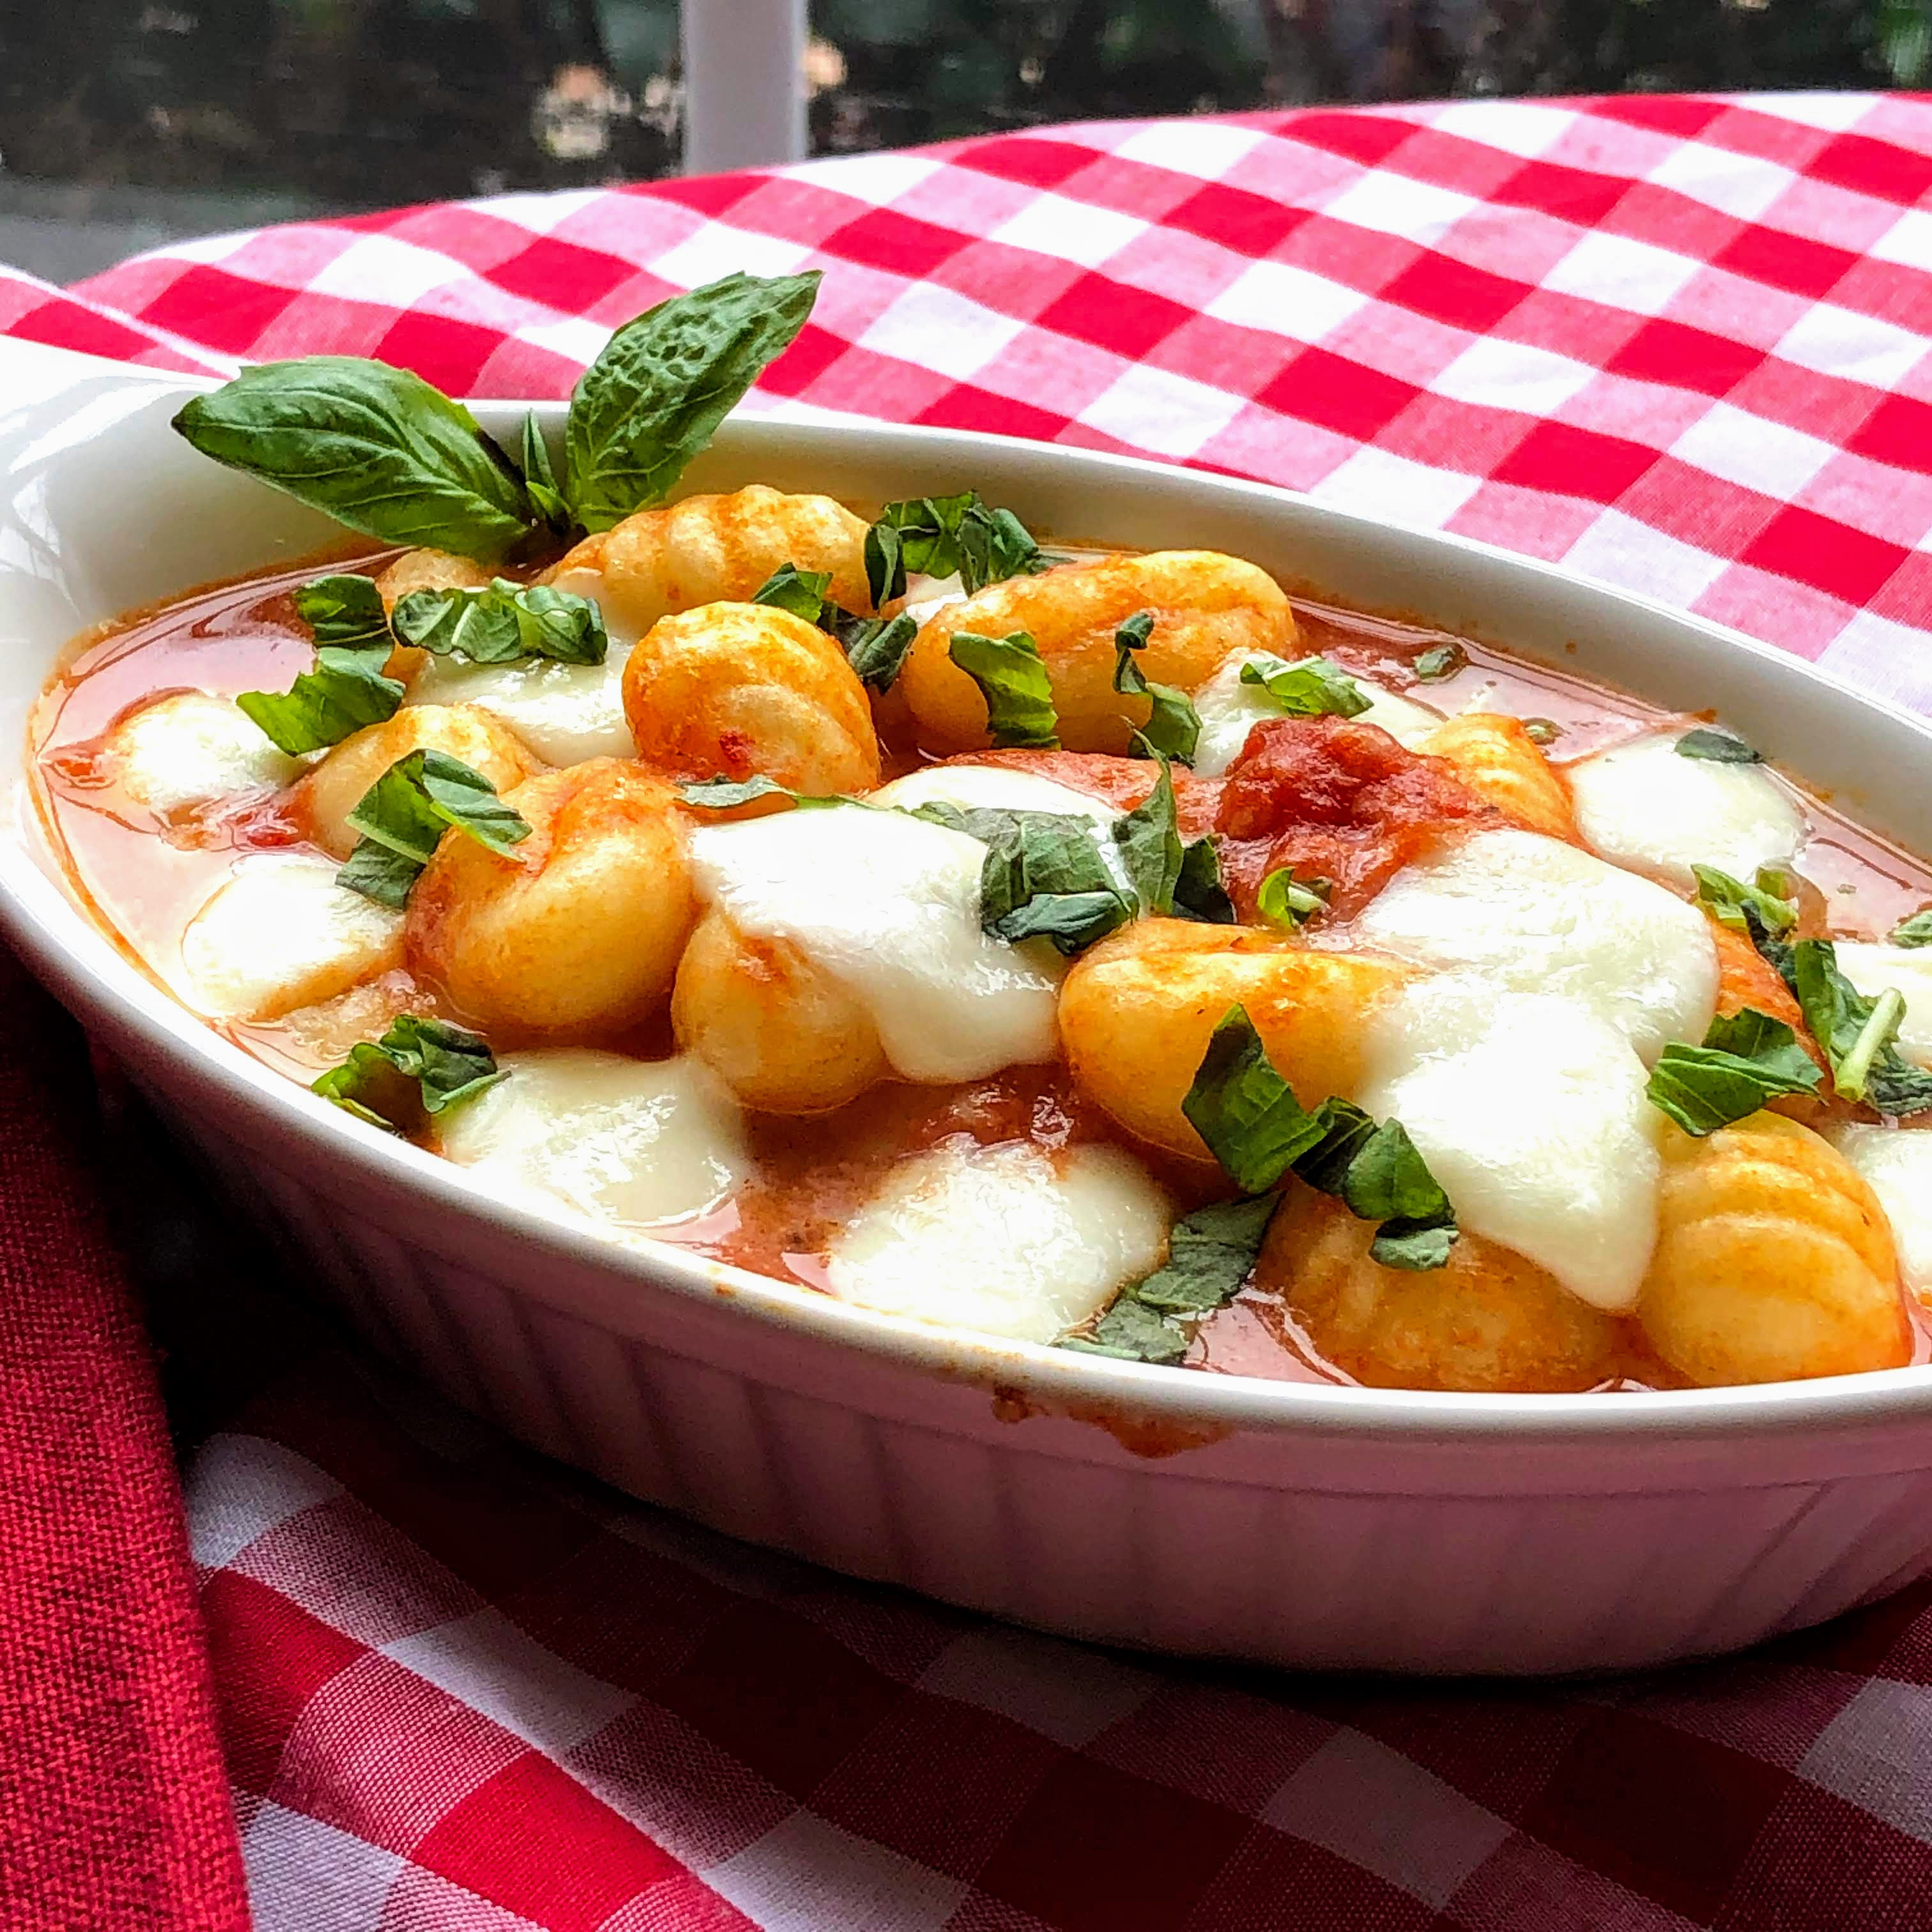 "This classic Italian dish starts with a package of potato gnocchi and canned crushed tomatoes. ""Known as 'gnocchi alla sorrentina,' this classic Italian pasta dish uses simple ingredients and tastes delicious,"" says saretta. ""Use homemade or store-bought gnocchi."""